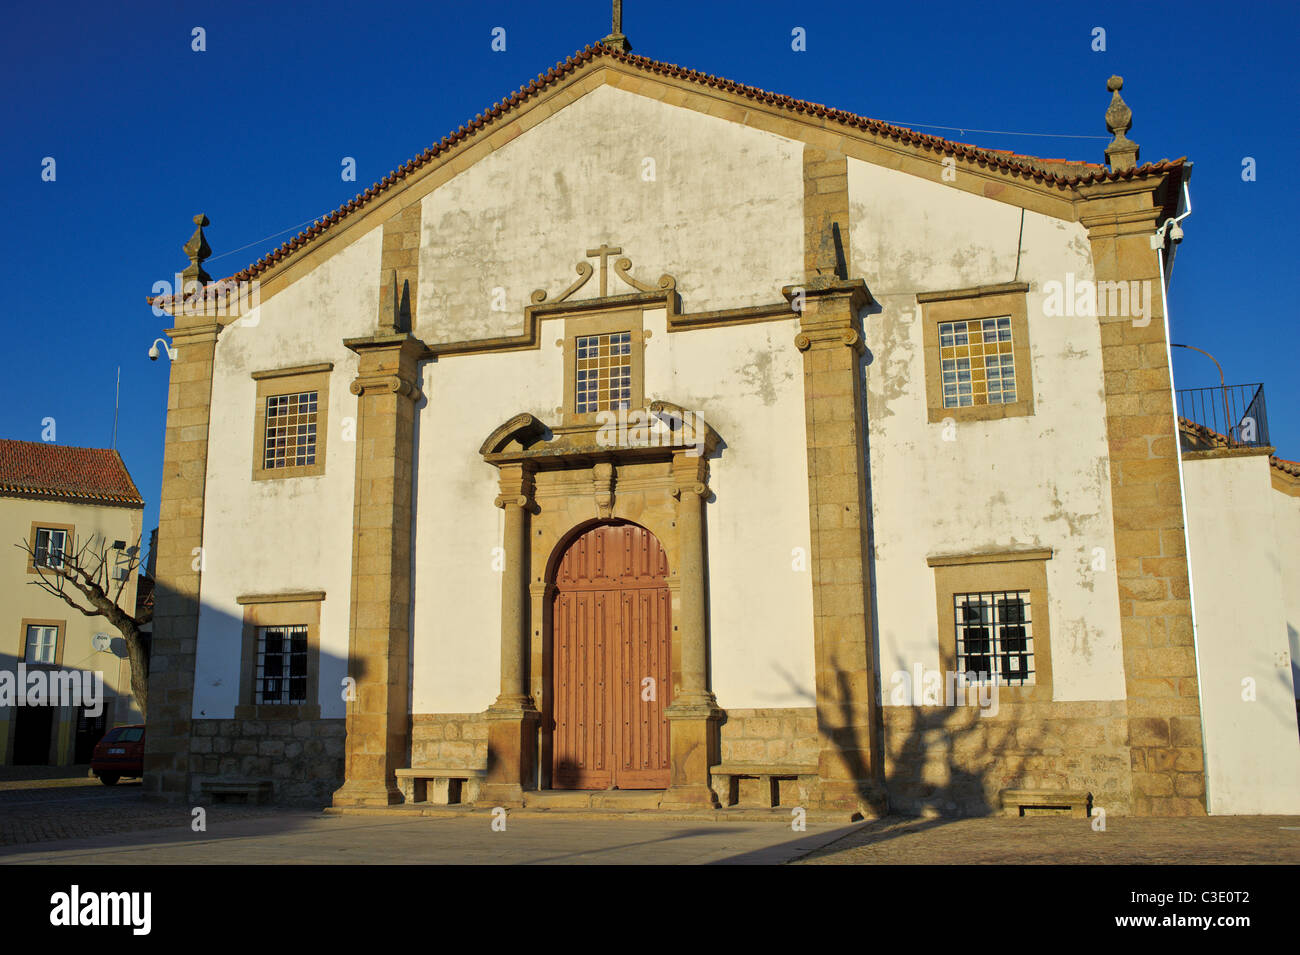 church in portugal - Stock Image